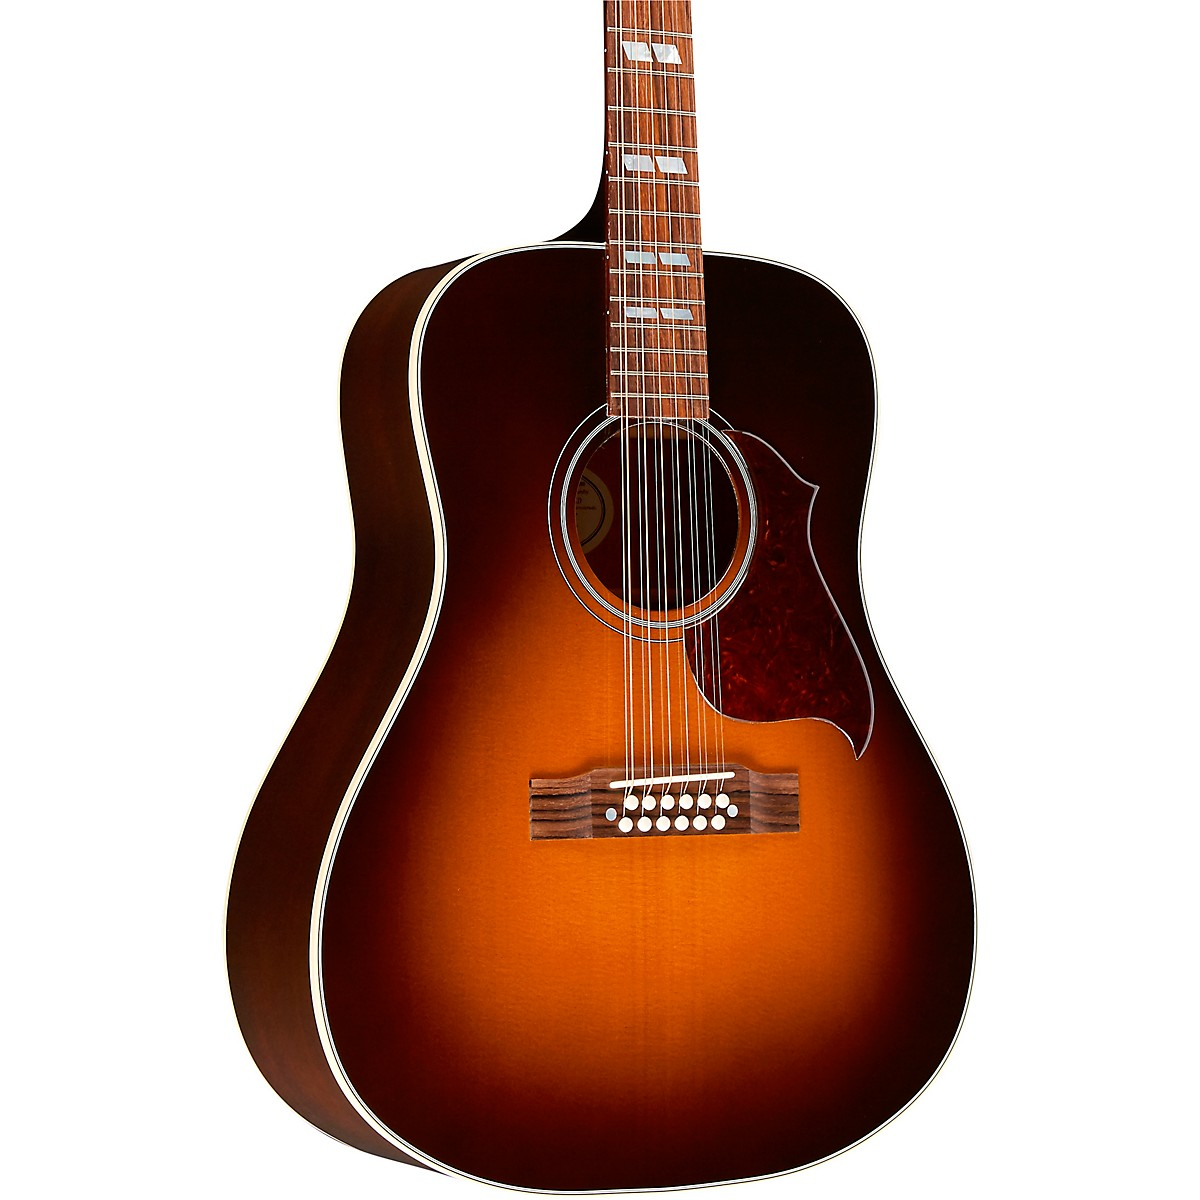 Gibson Hummingbird Pro Limited Edition 12-String Acoustic-Electric Guitar